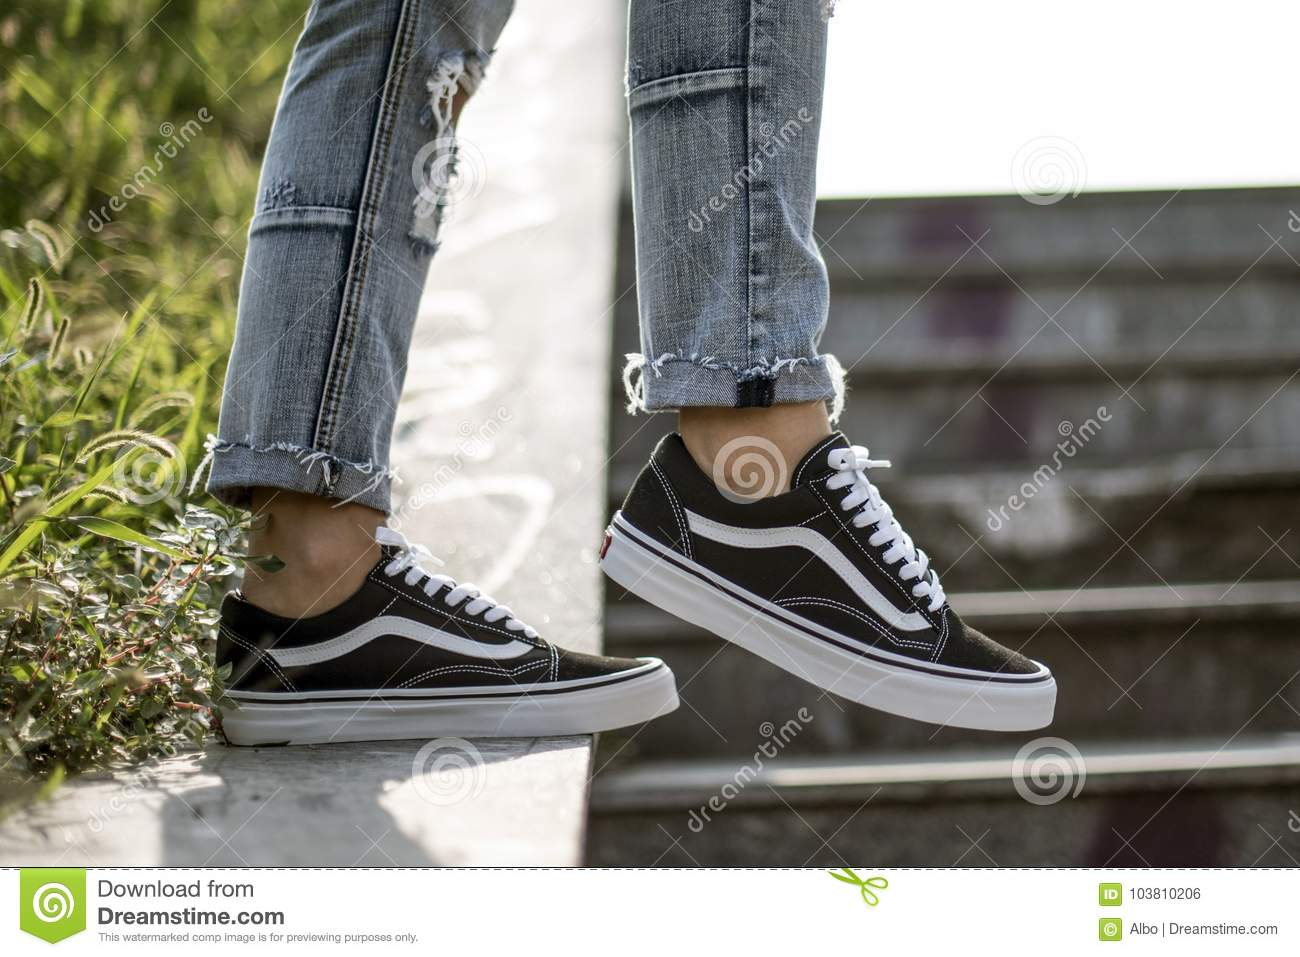 """Siete Juramento Infantil  vans street Rated 4.0/5 based on 8 customer reviews Price: $ 57.99 In  stock Size: Select Product description Color: then being bounced off,"""" he  said, when asked about Indian batsmen's visualisation in the net against  bouncing deliveries. ine ..."""